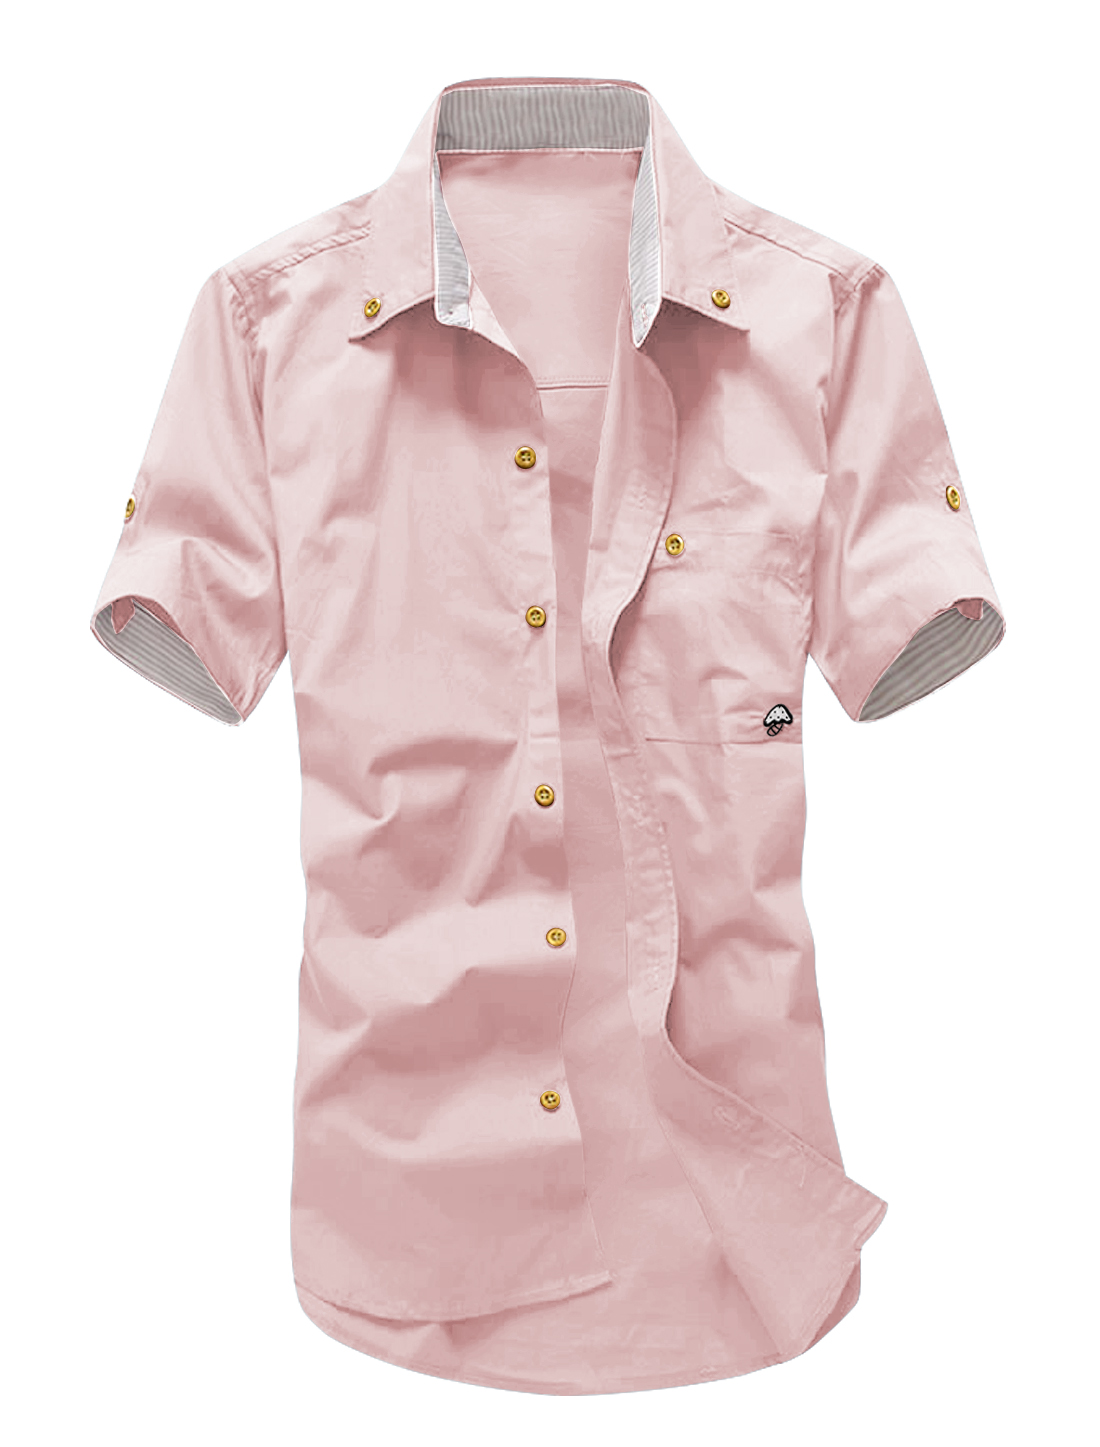 Men Short Roll Up Sleeves Panel Detail Casual Shirts Light Pink M